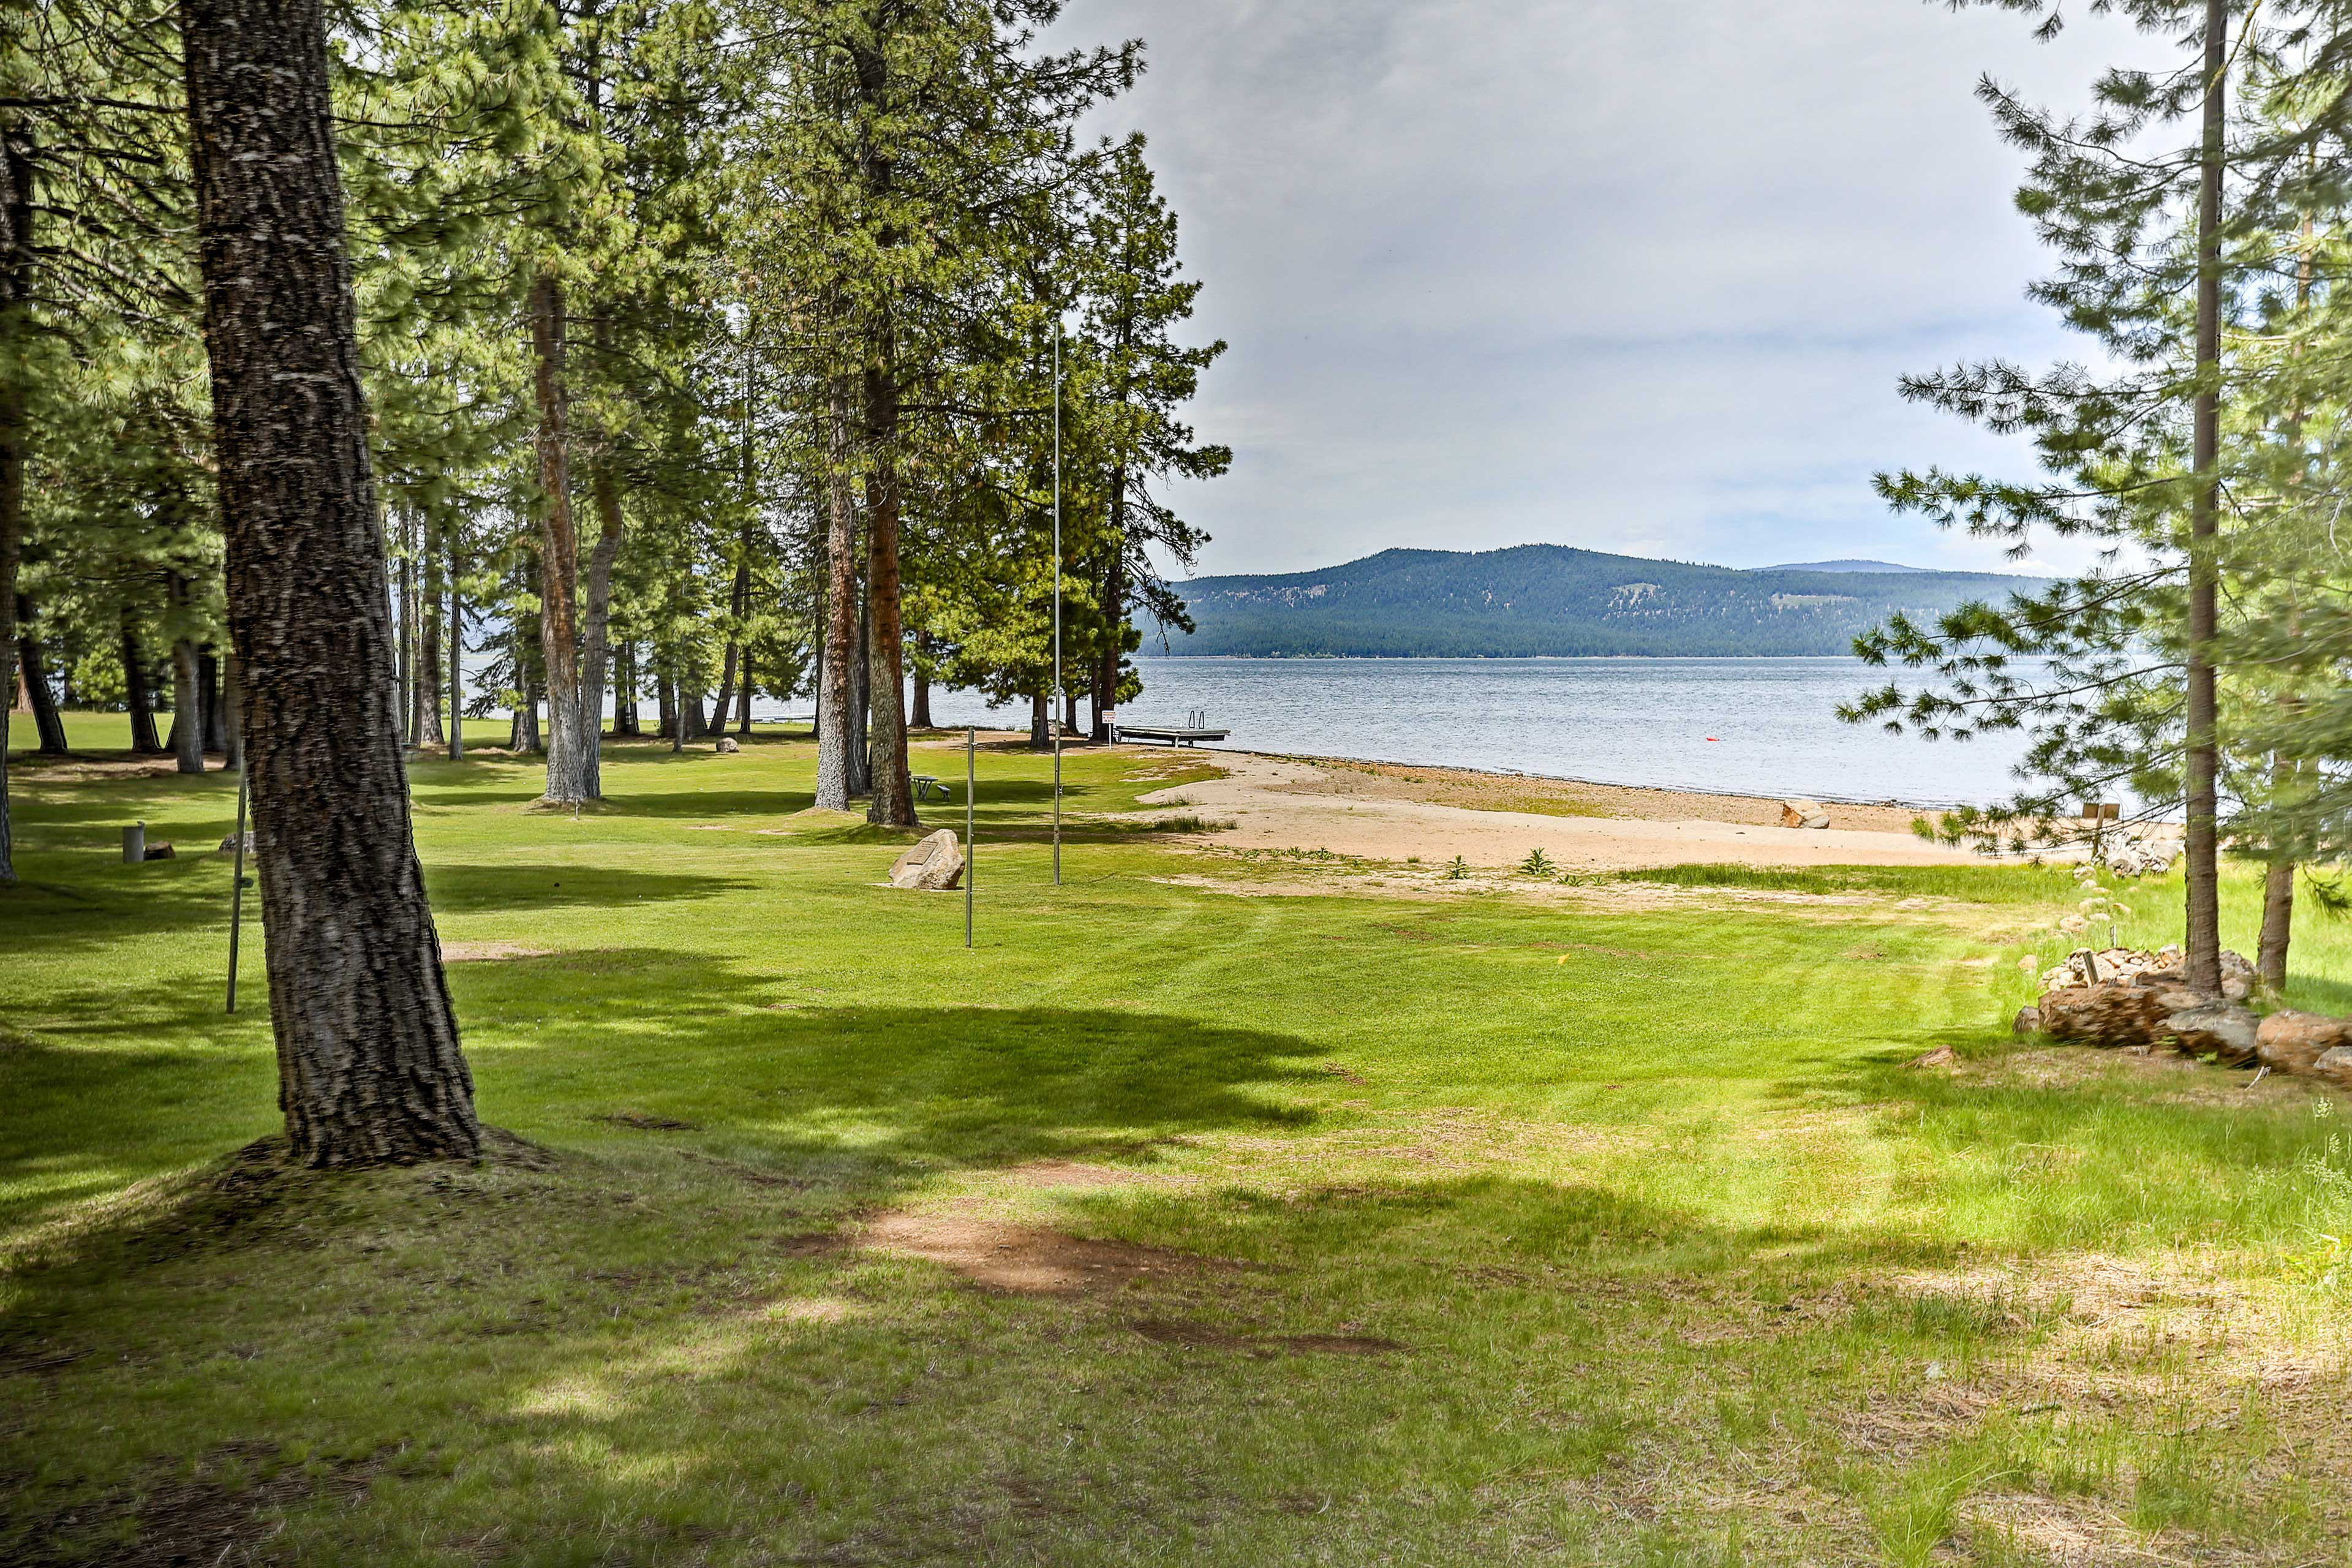 Spend the day floating on Lake Almanor just across the street!